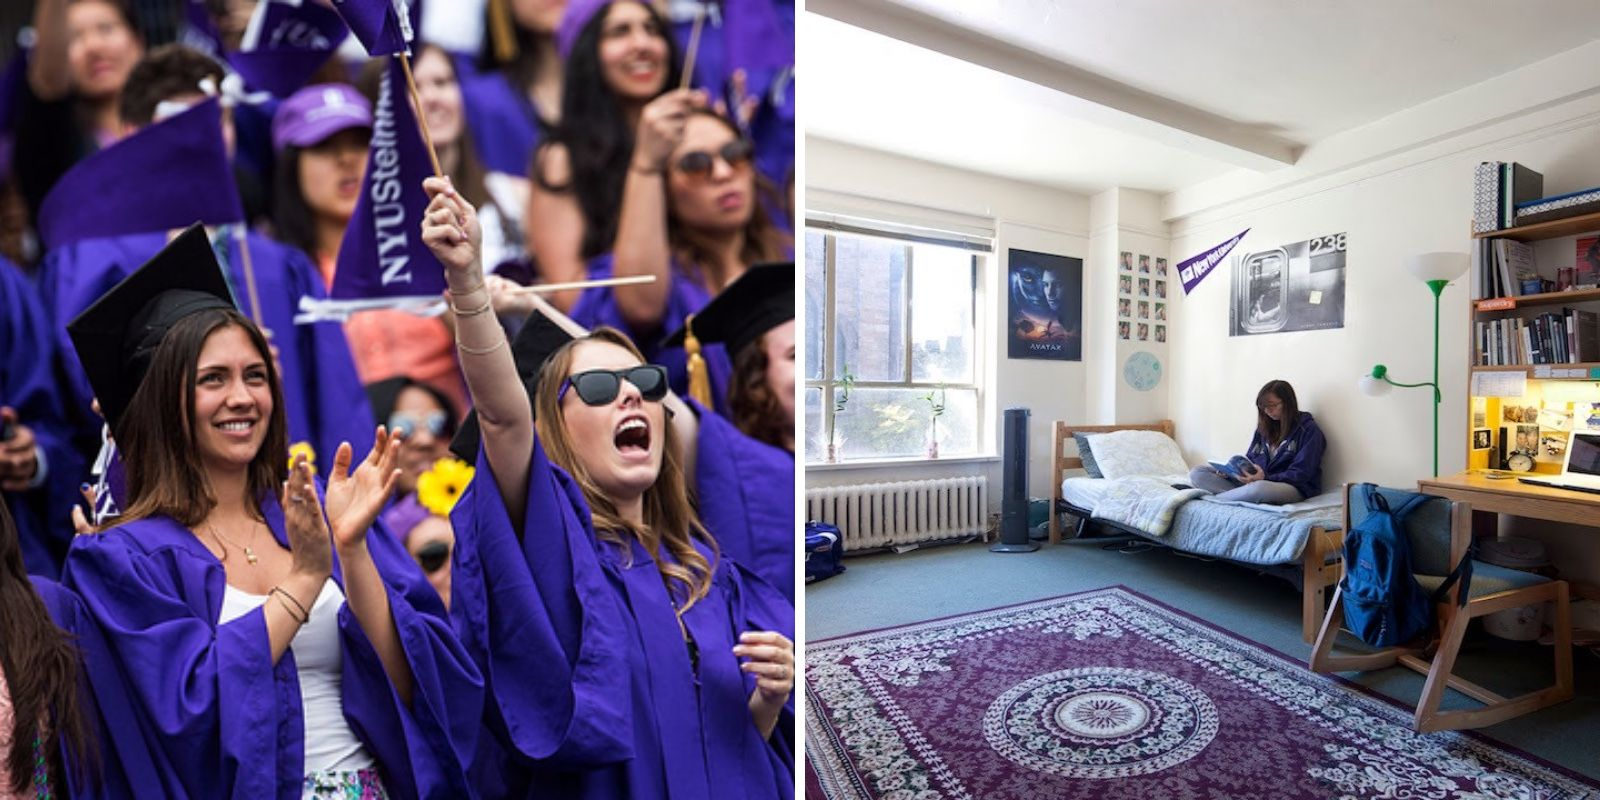 NYU to implement segregated dorms in the name of equality